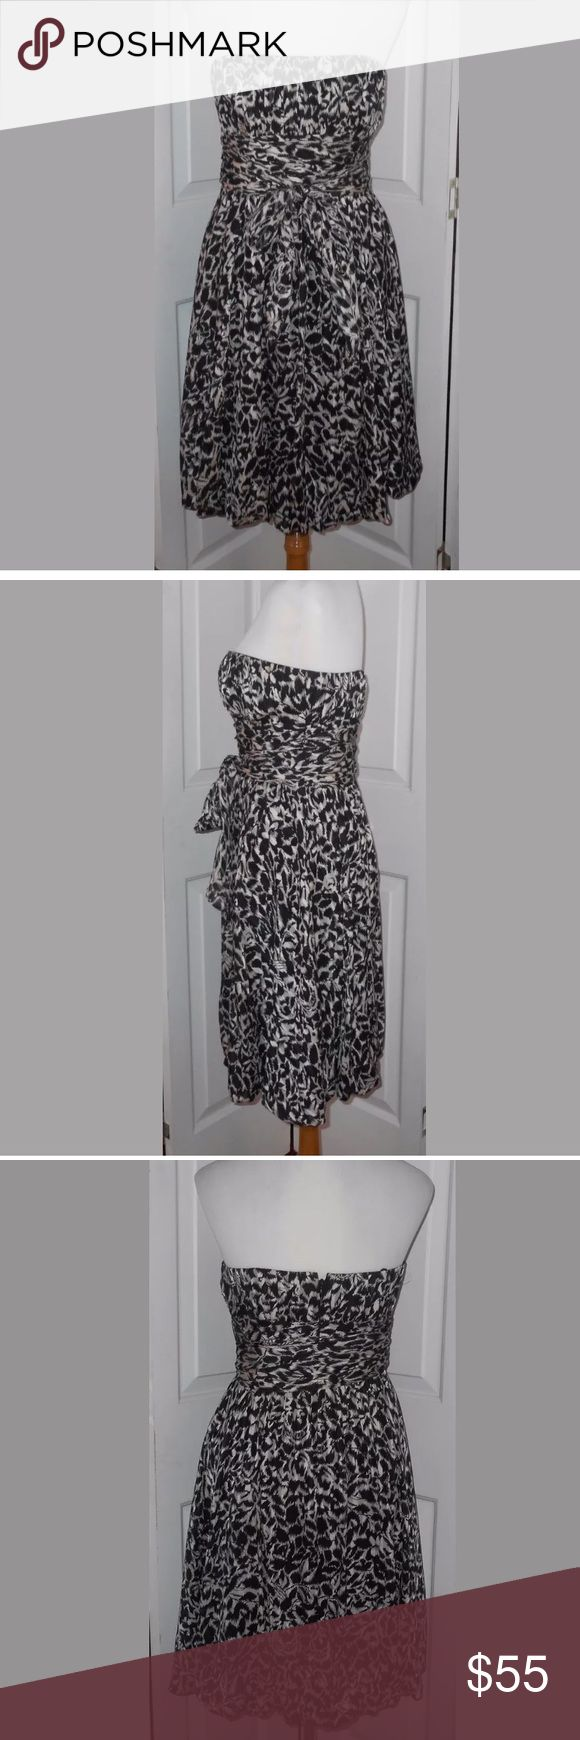 """BCBG MaxAzria Black Floral Print Silk Dress size 4 Gorgeous BCBG MaxAzria Black and Gray Floral Print 100% Silk Dress. Women's size 4. 100% Silk, Lining: 100% Polyester. It has boning up top, a back zipper, and a bubble hem for fullness. Measures approx: 16 1/2"""" pit to pit and 29"""" in length. BCBGMaxAzria Dresses"""